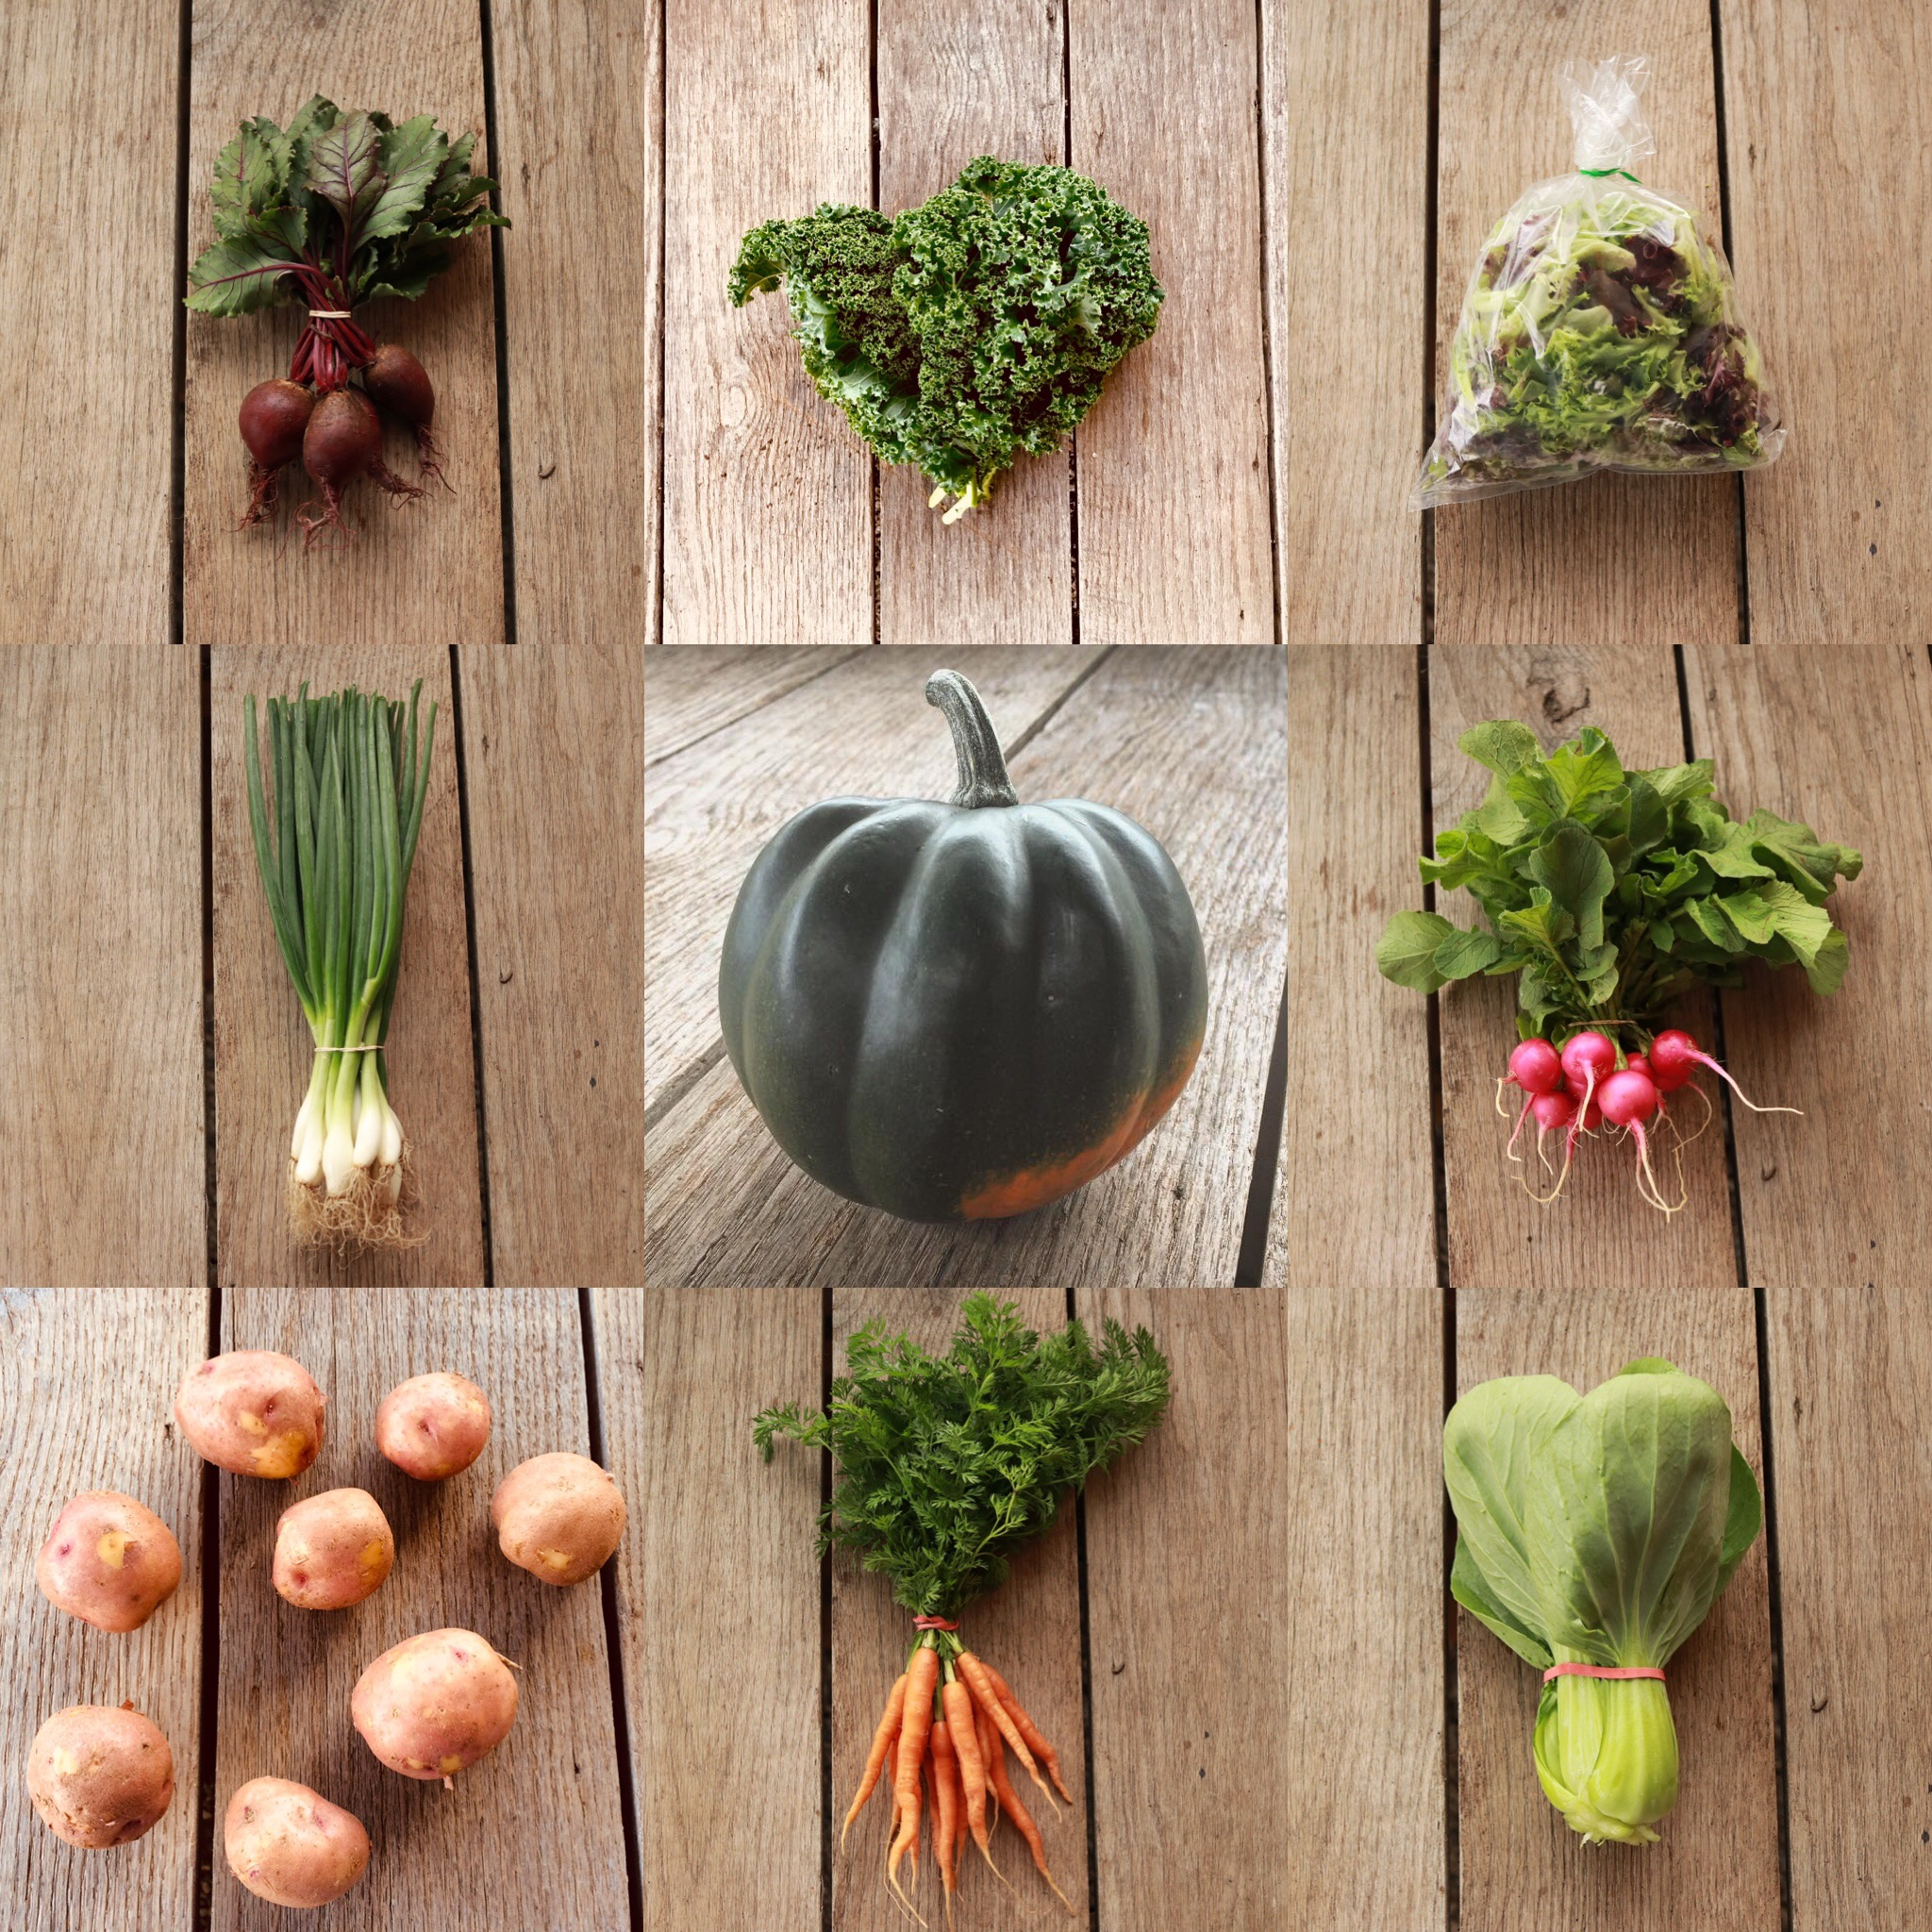 Autumn Vegetable Share